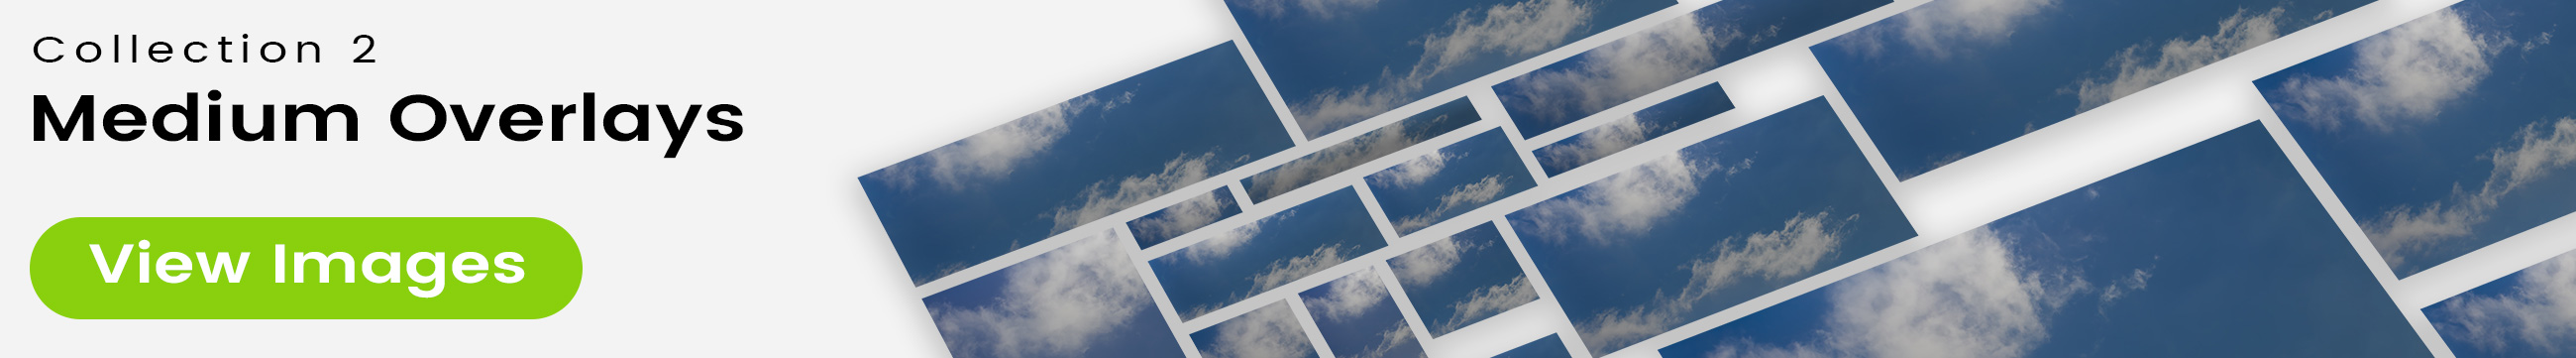 See 25 bonus images included with clouds stock image 9470. Collection 2 of 4 features a medium-dark overlay design.